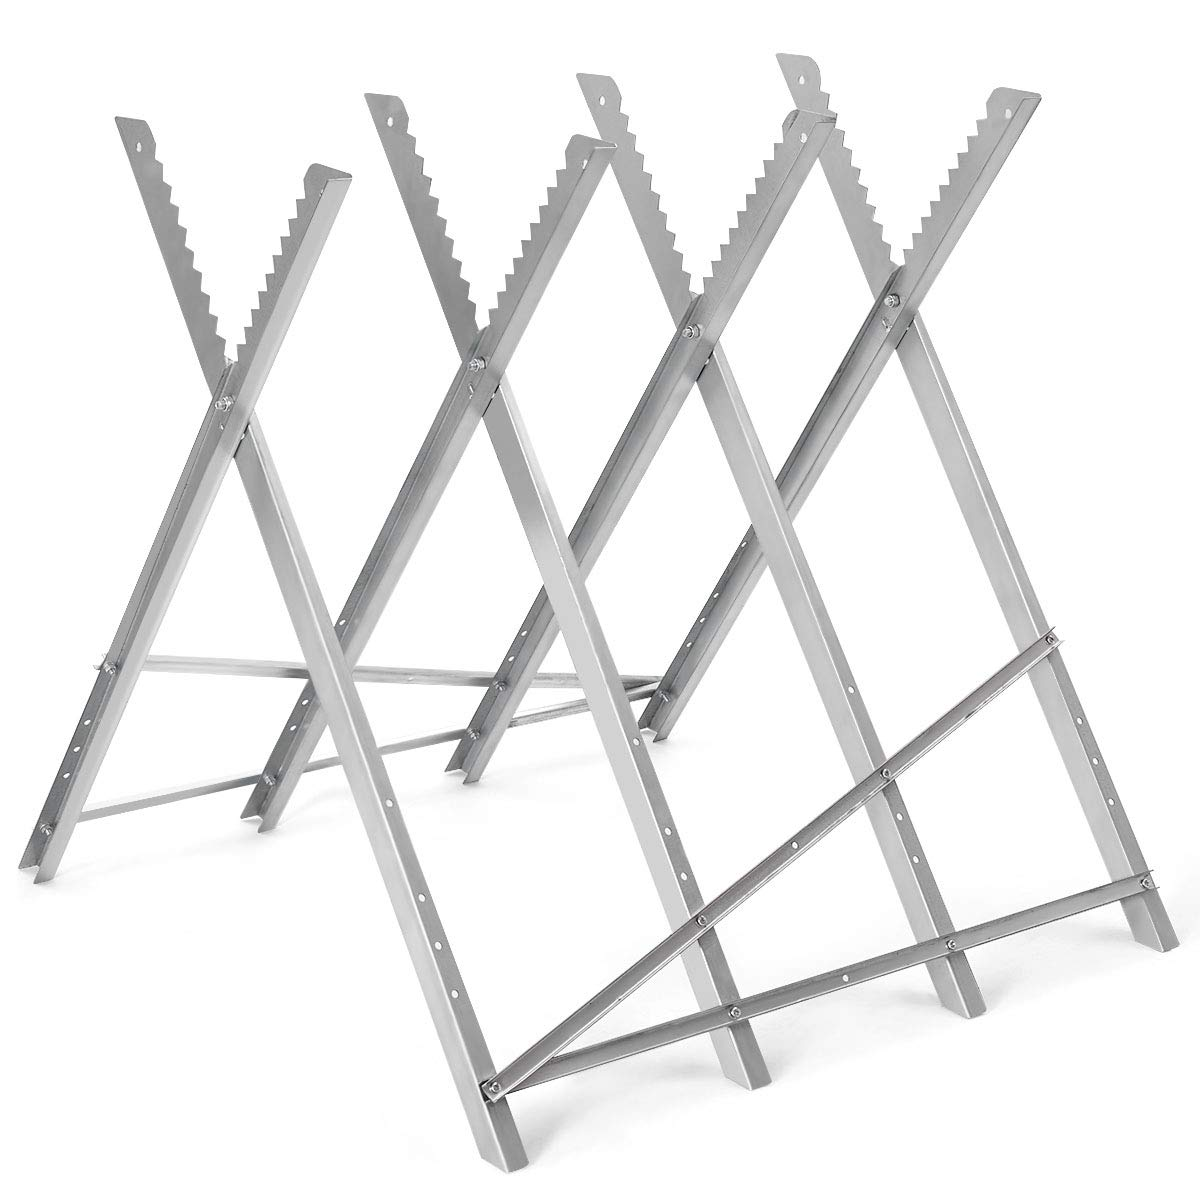 Goplus Portable Sawhorse Heavy Duty Adjustable Steel Work Support Foldable Sawhorse Stand 220 lbs Weight Capacity